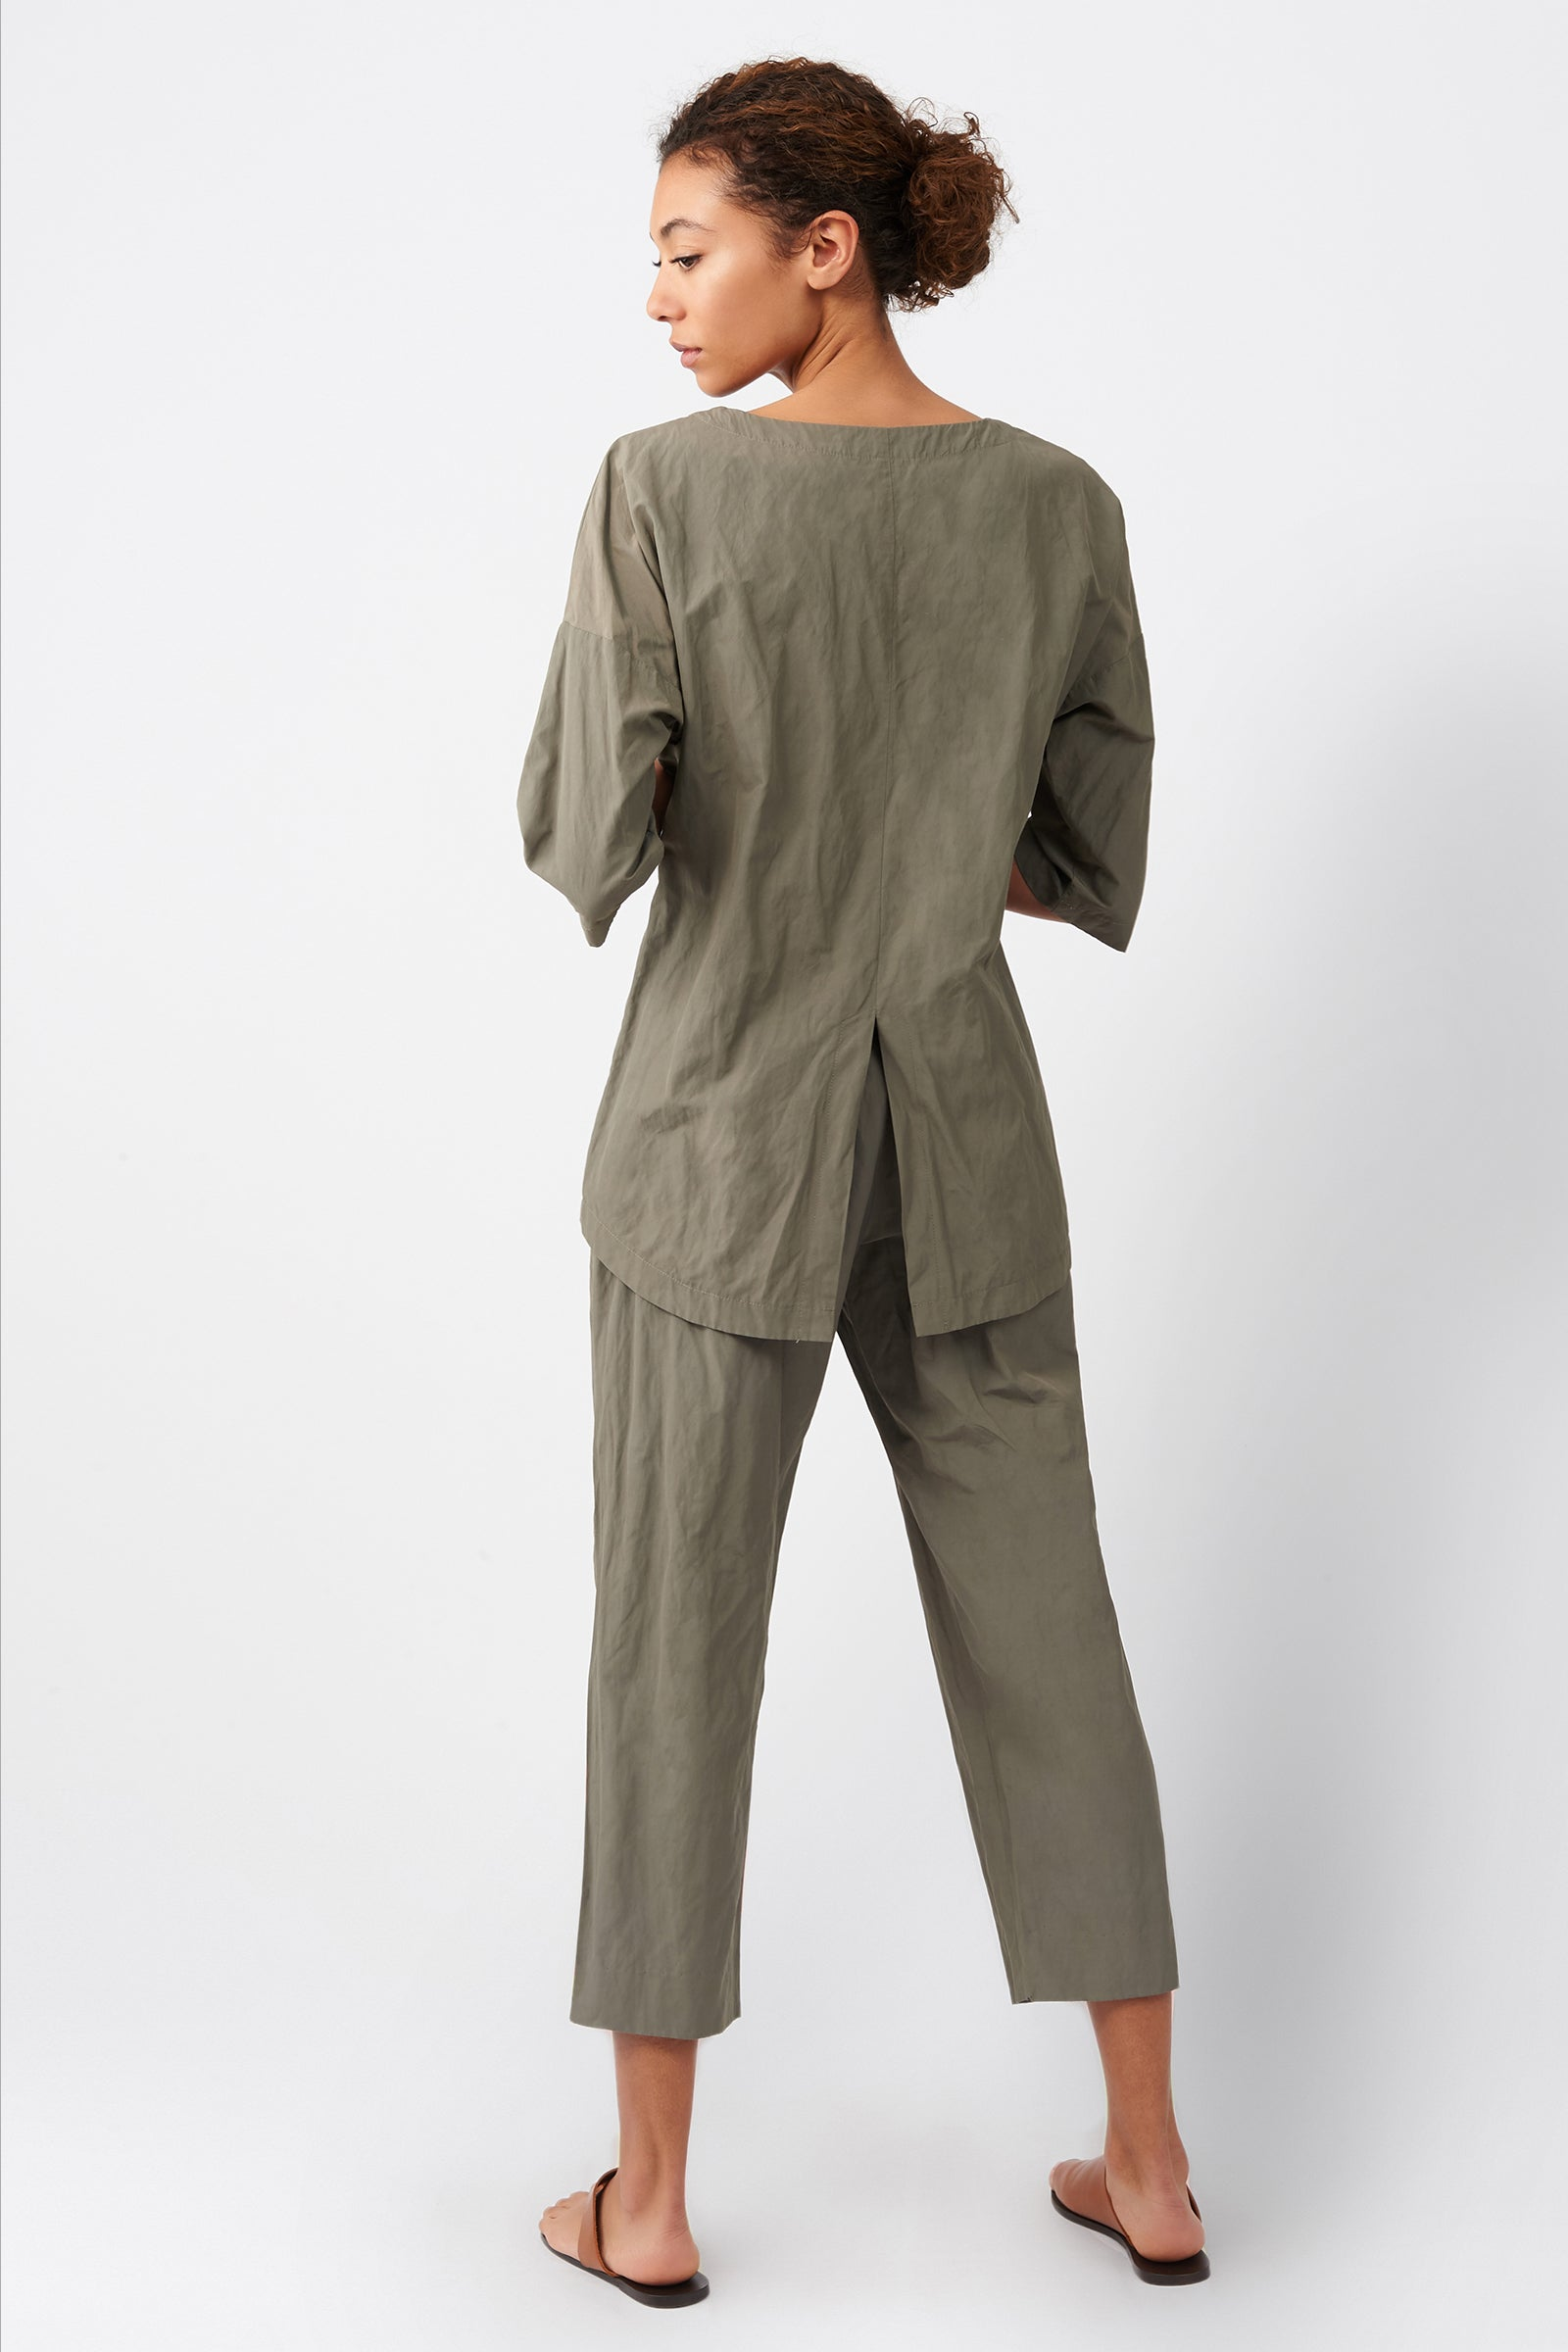 Kal Rieman Cinch Front Pullover in Olive on Model Full Back View